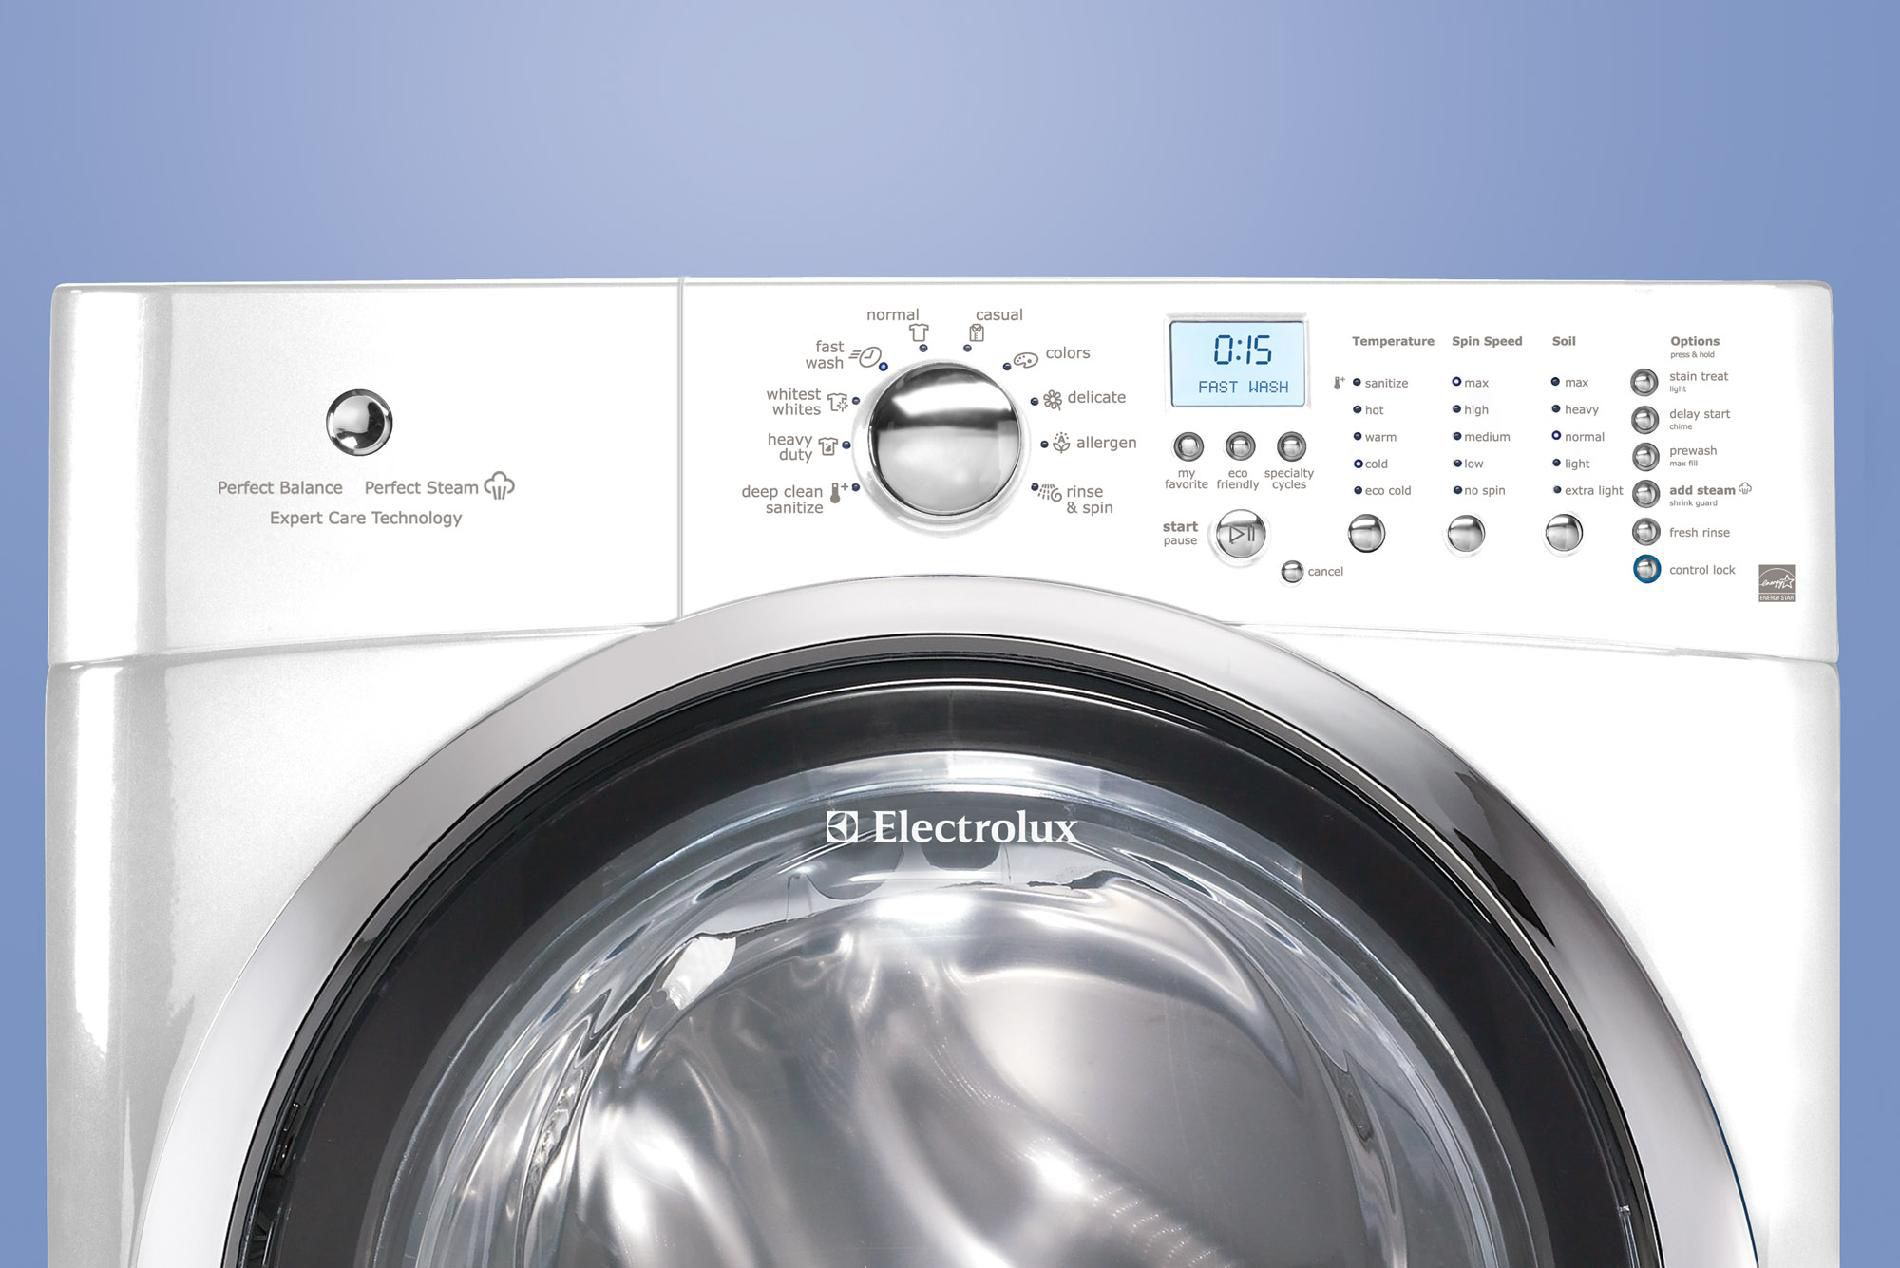 Electrolux EIFLS60JIW 4.3 cu. ft. Front-Load Washer w/ Perfect Steam™ - White